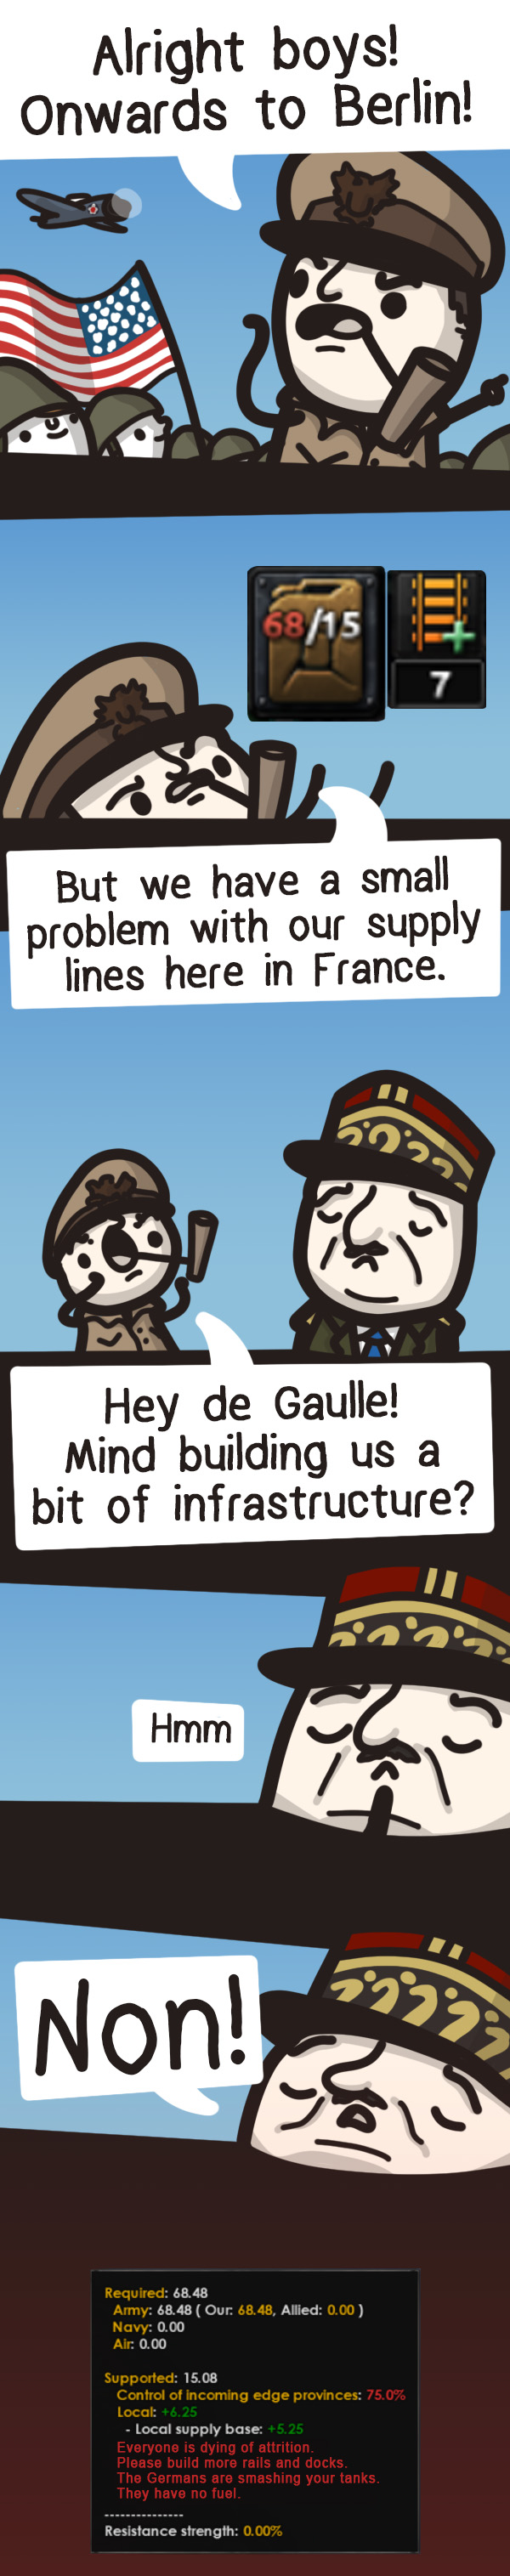 Hearts of Iron 4 - Allied infrastructure